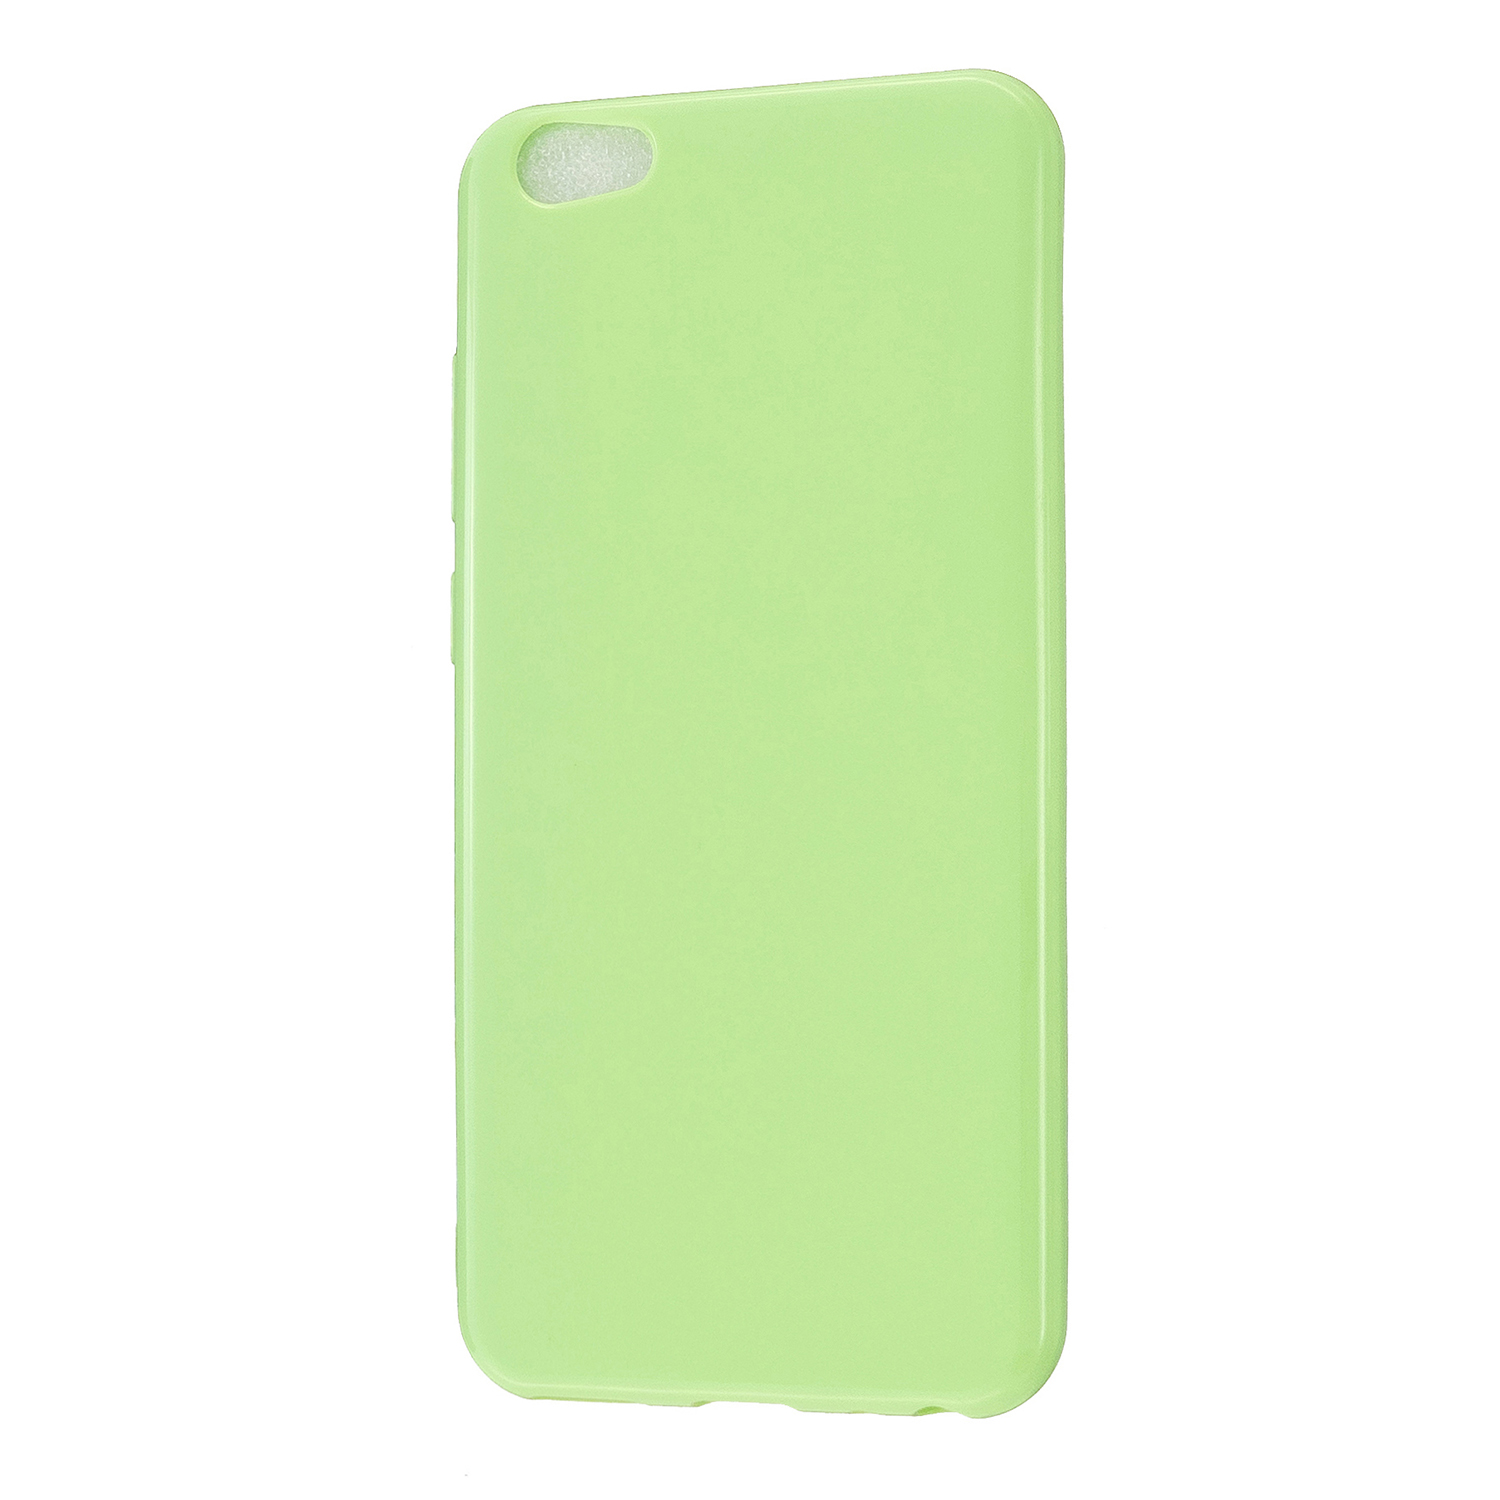 For VIVO Y67/Y71 Cellphone Cover Glossy TPU Phone Case Anti-Dust Stain-proof Easy Install Screen Protector Fluorescent green